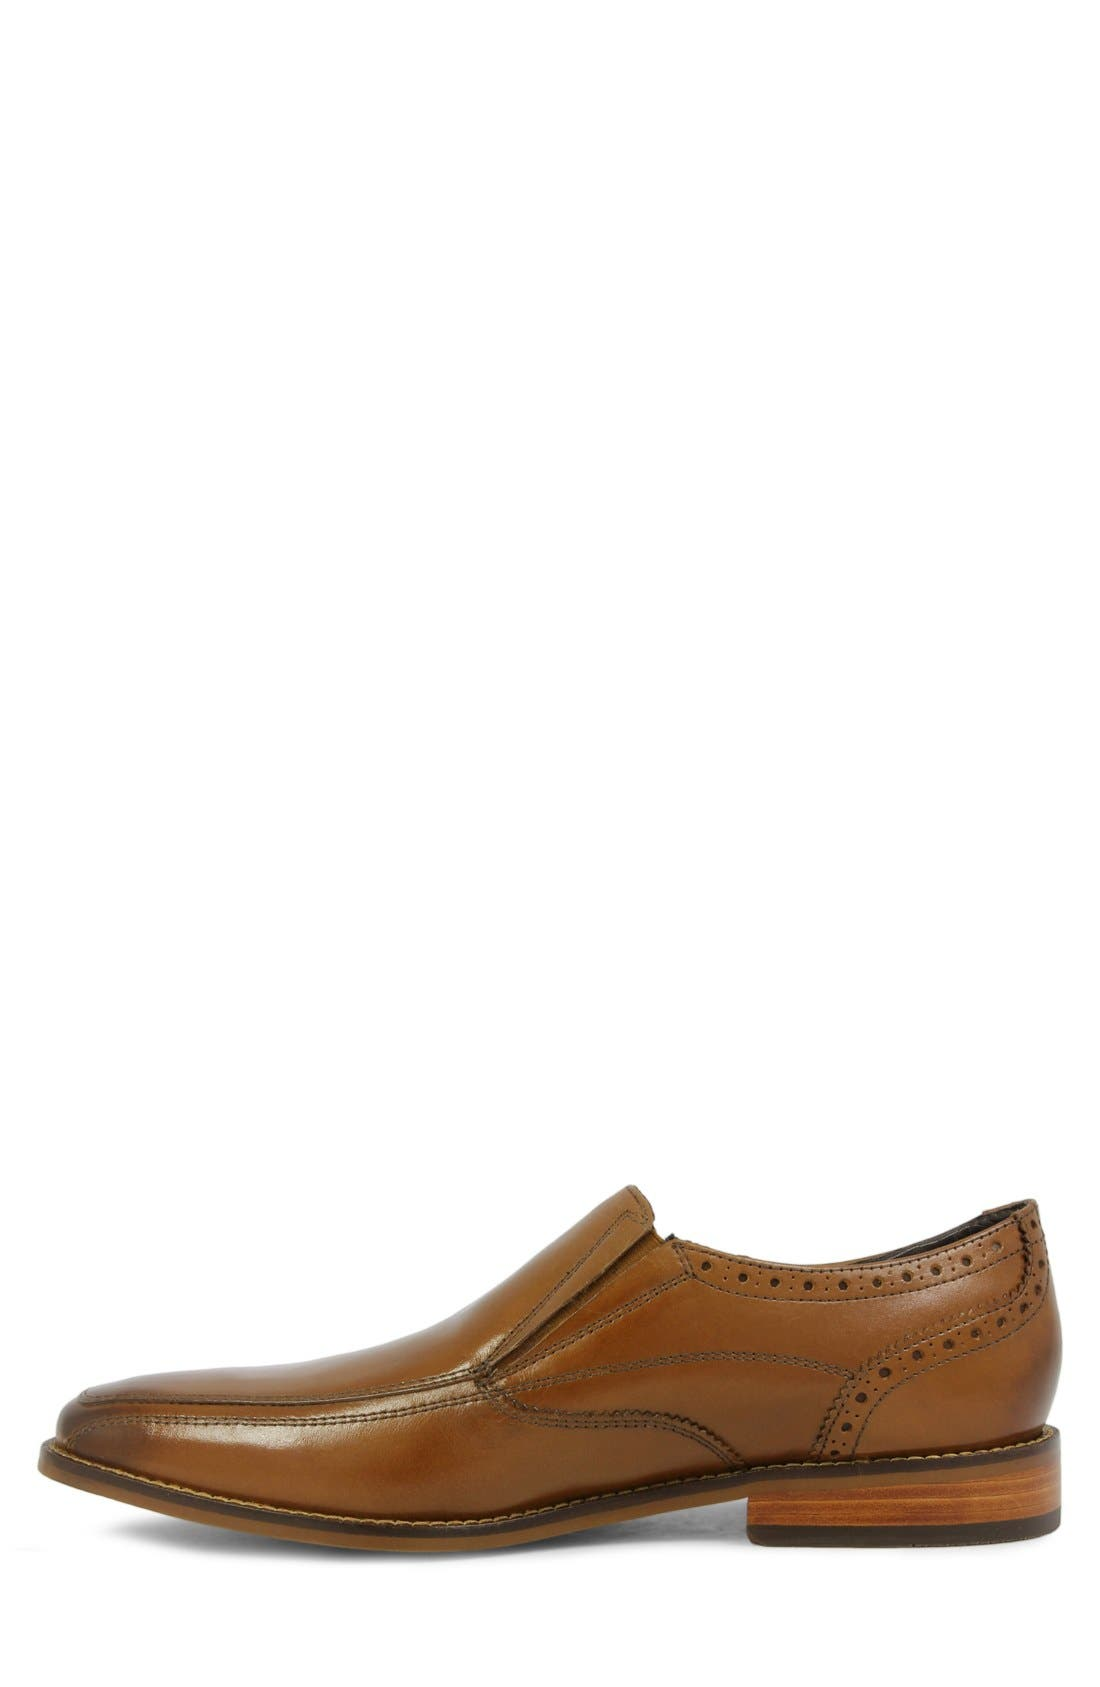 Alternate Image 4  - Florsheim 'Castellano' Venetian Loafer (Men)